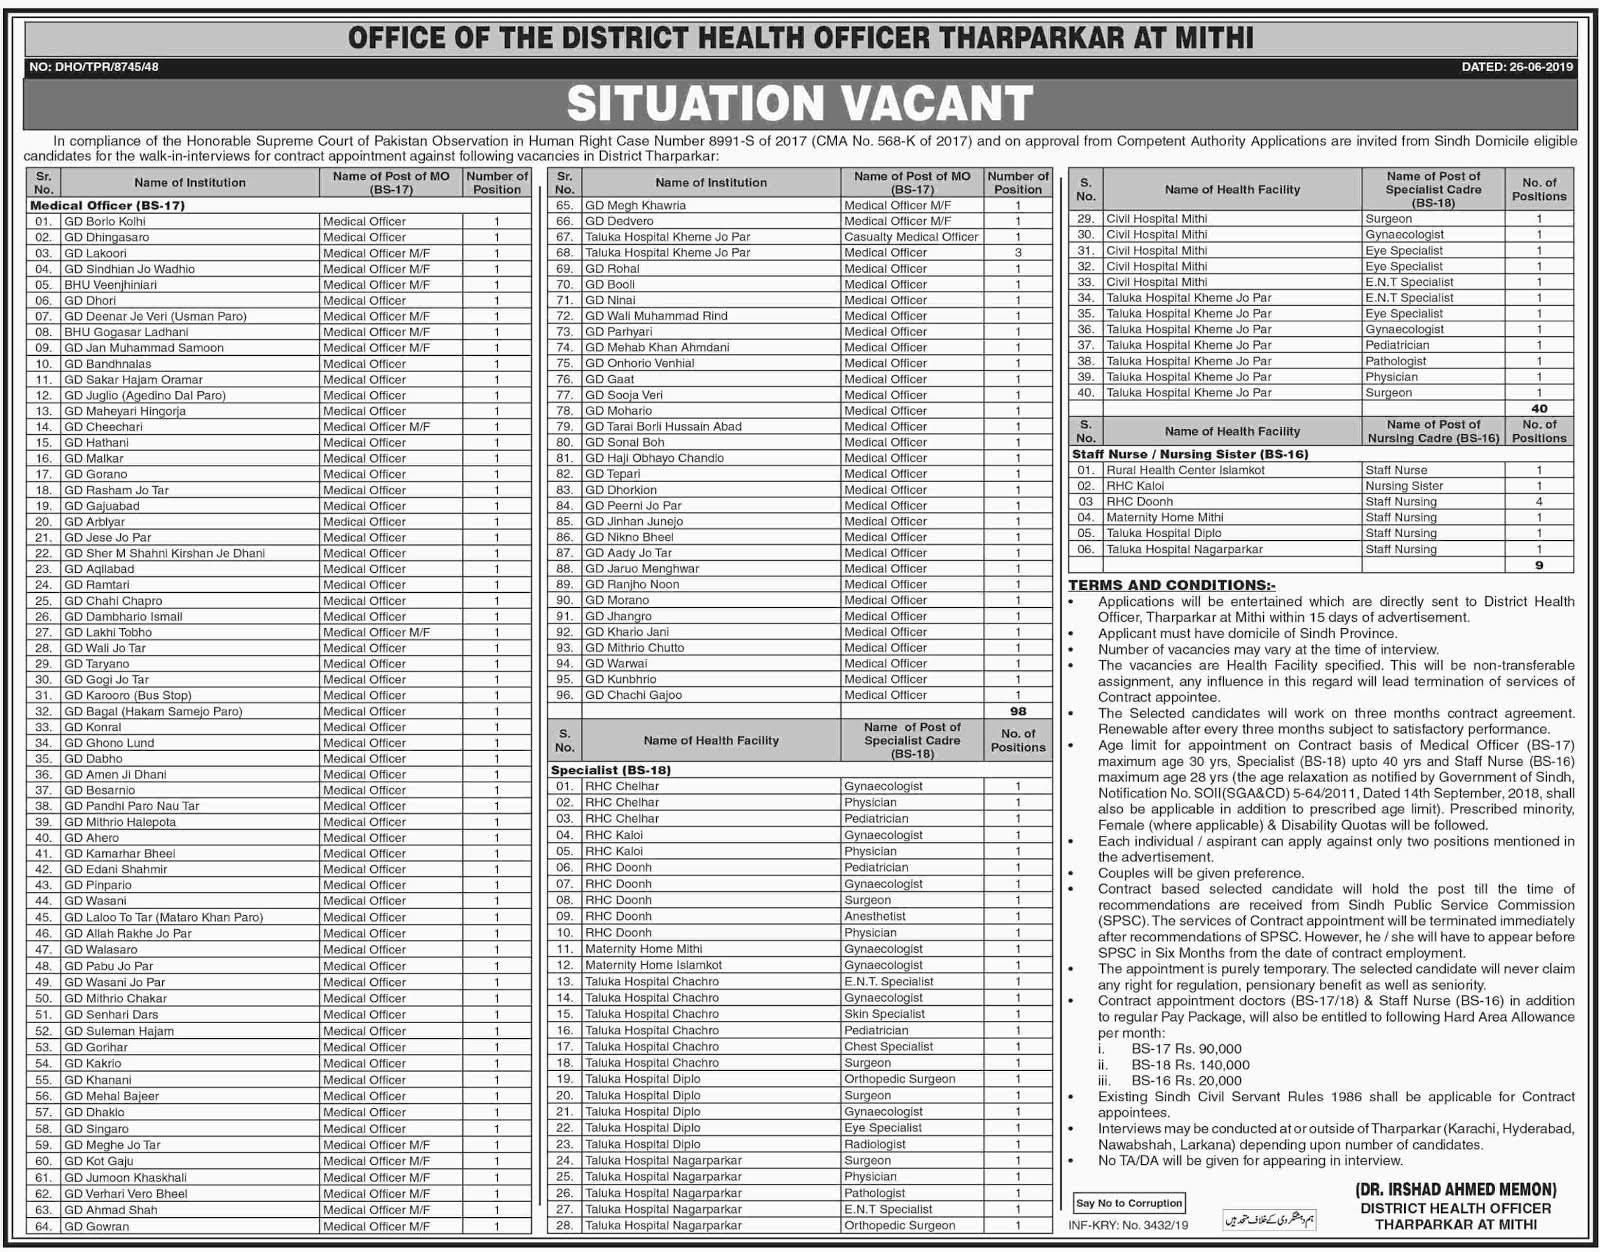 District Health Office Jobs 2019 (747 Posts),health jobs,pakistan jobs 2019,health department jobs 2019,latest govt jobs 2019,govt jobs 2019,district health officer new jobs 2019 || tahseen jobs,district health authority jobs 2019,district health officer nowshera feroz jobs 2019 latest,health officer jobs 2019,distract health officer jobs,district health authority jhang jobs 2019,govt jobs,district health authority toba tek singh jobs 2019